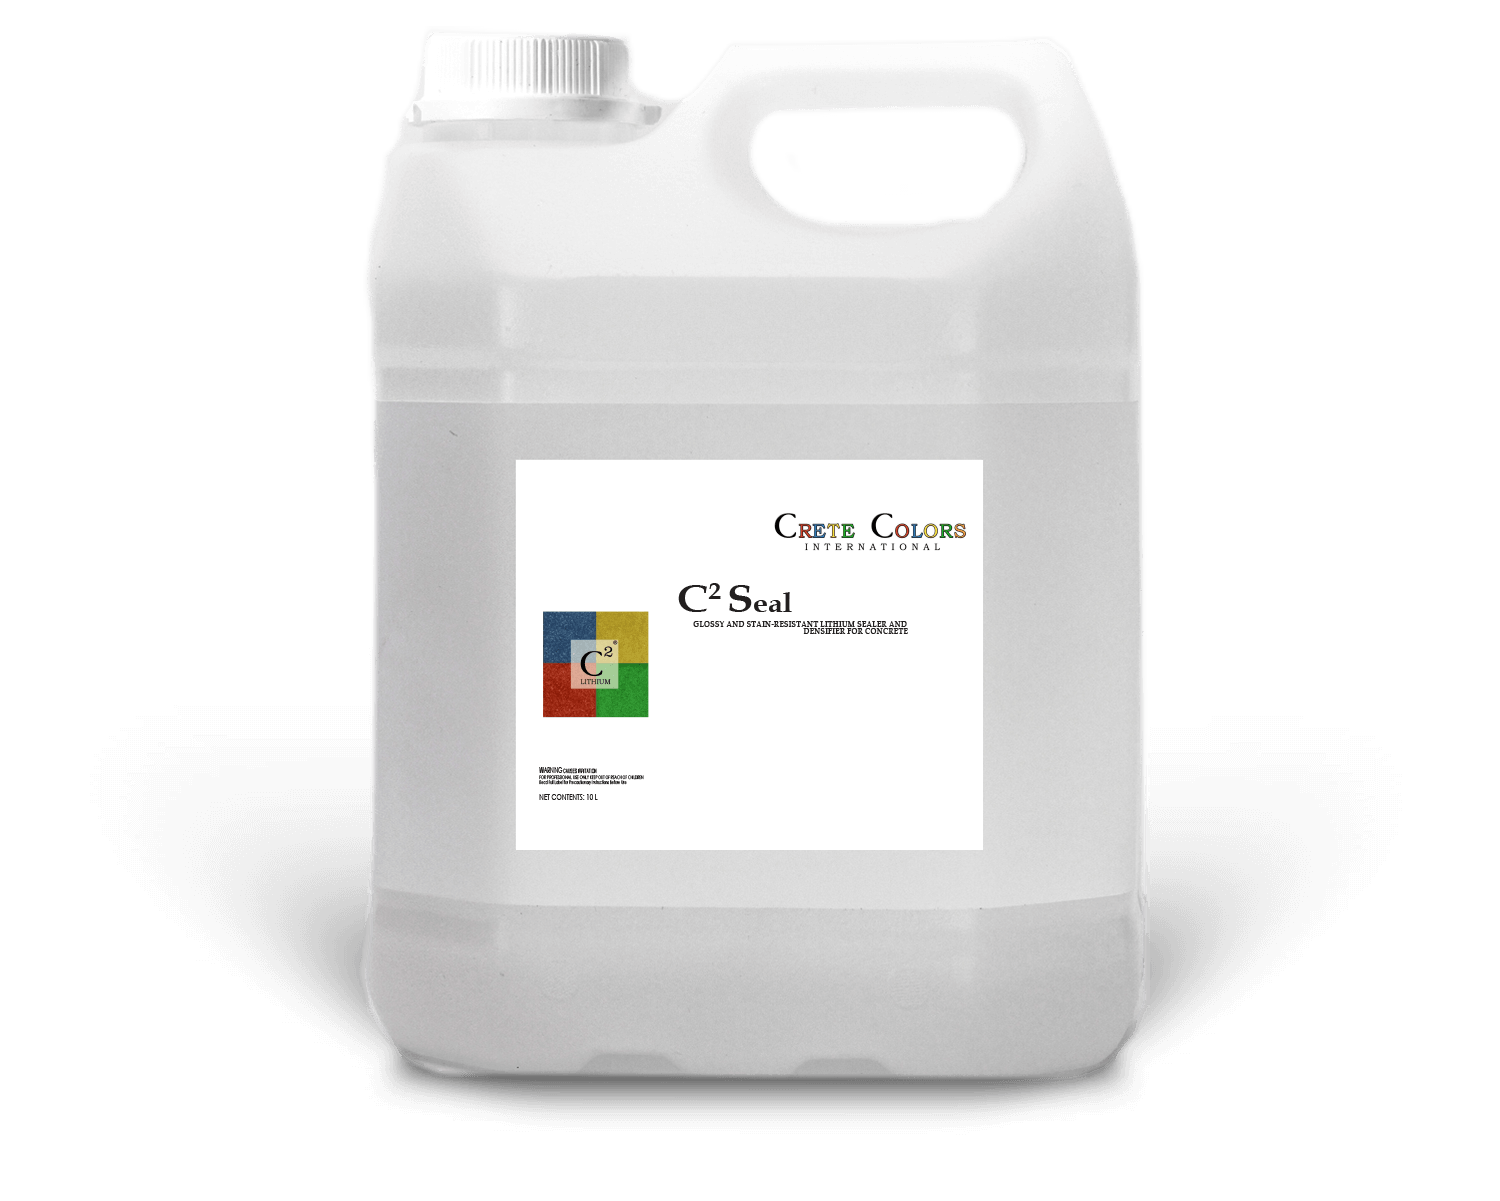 C2 Seal for concrete floors